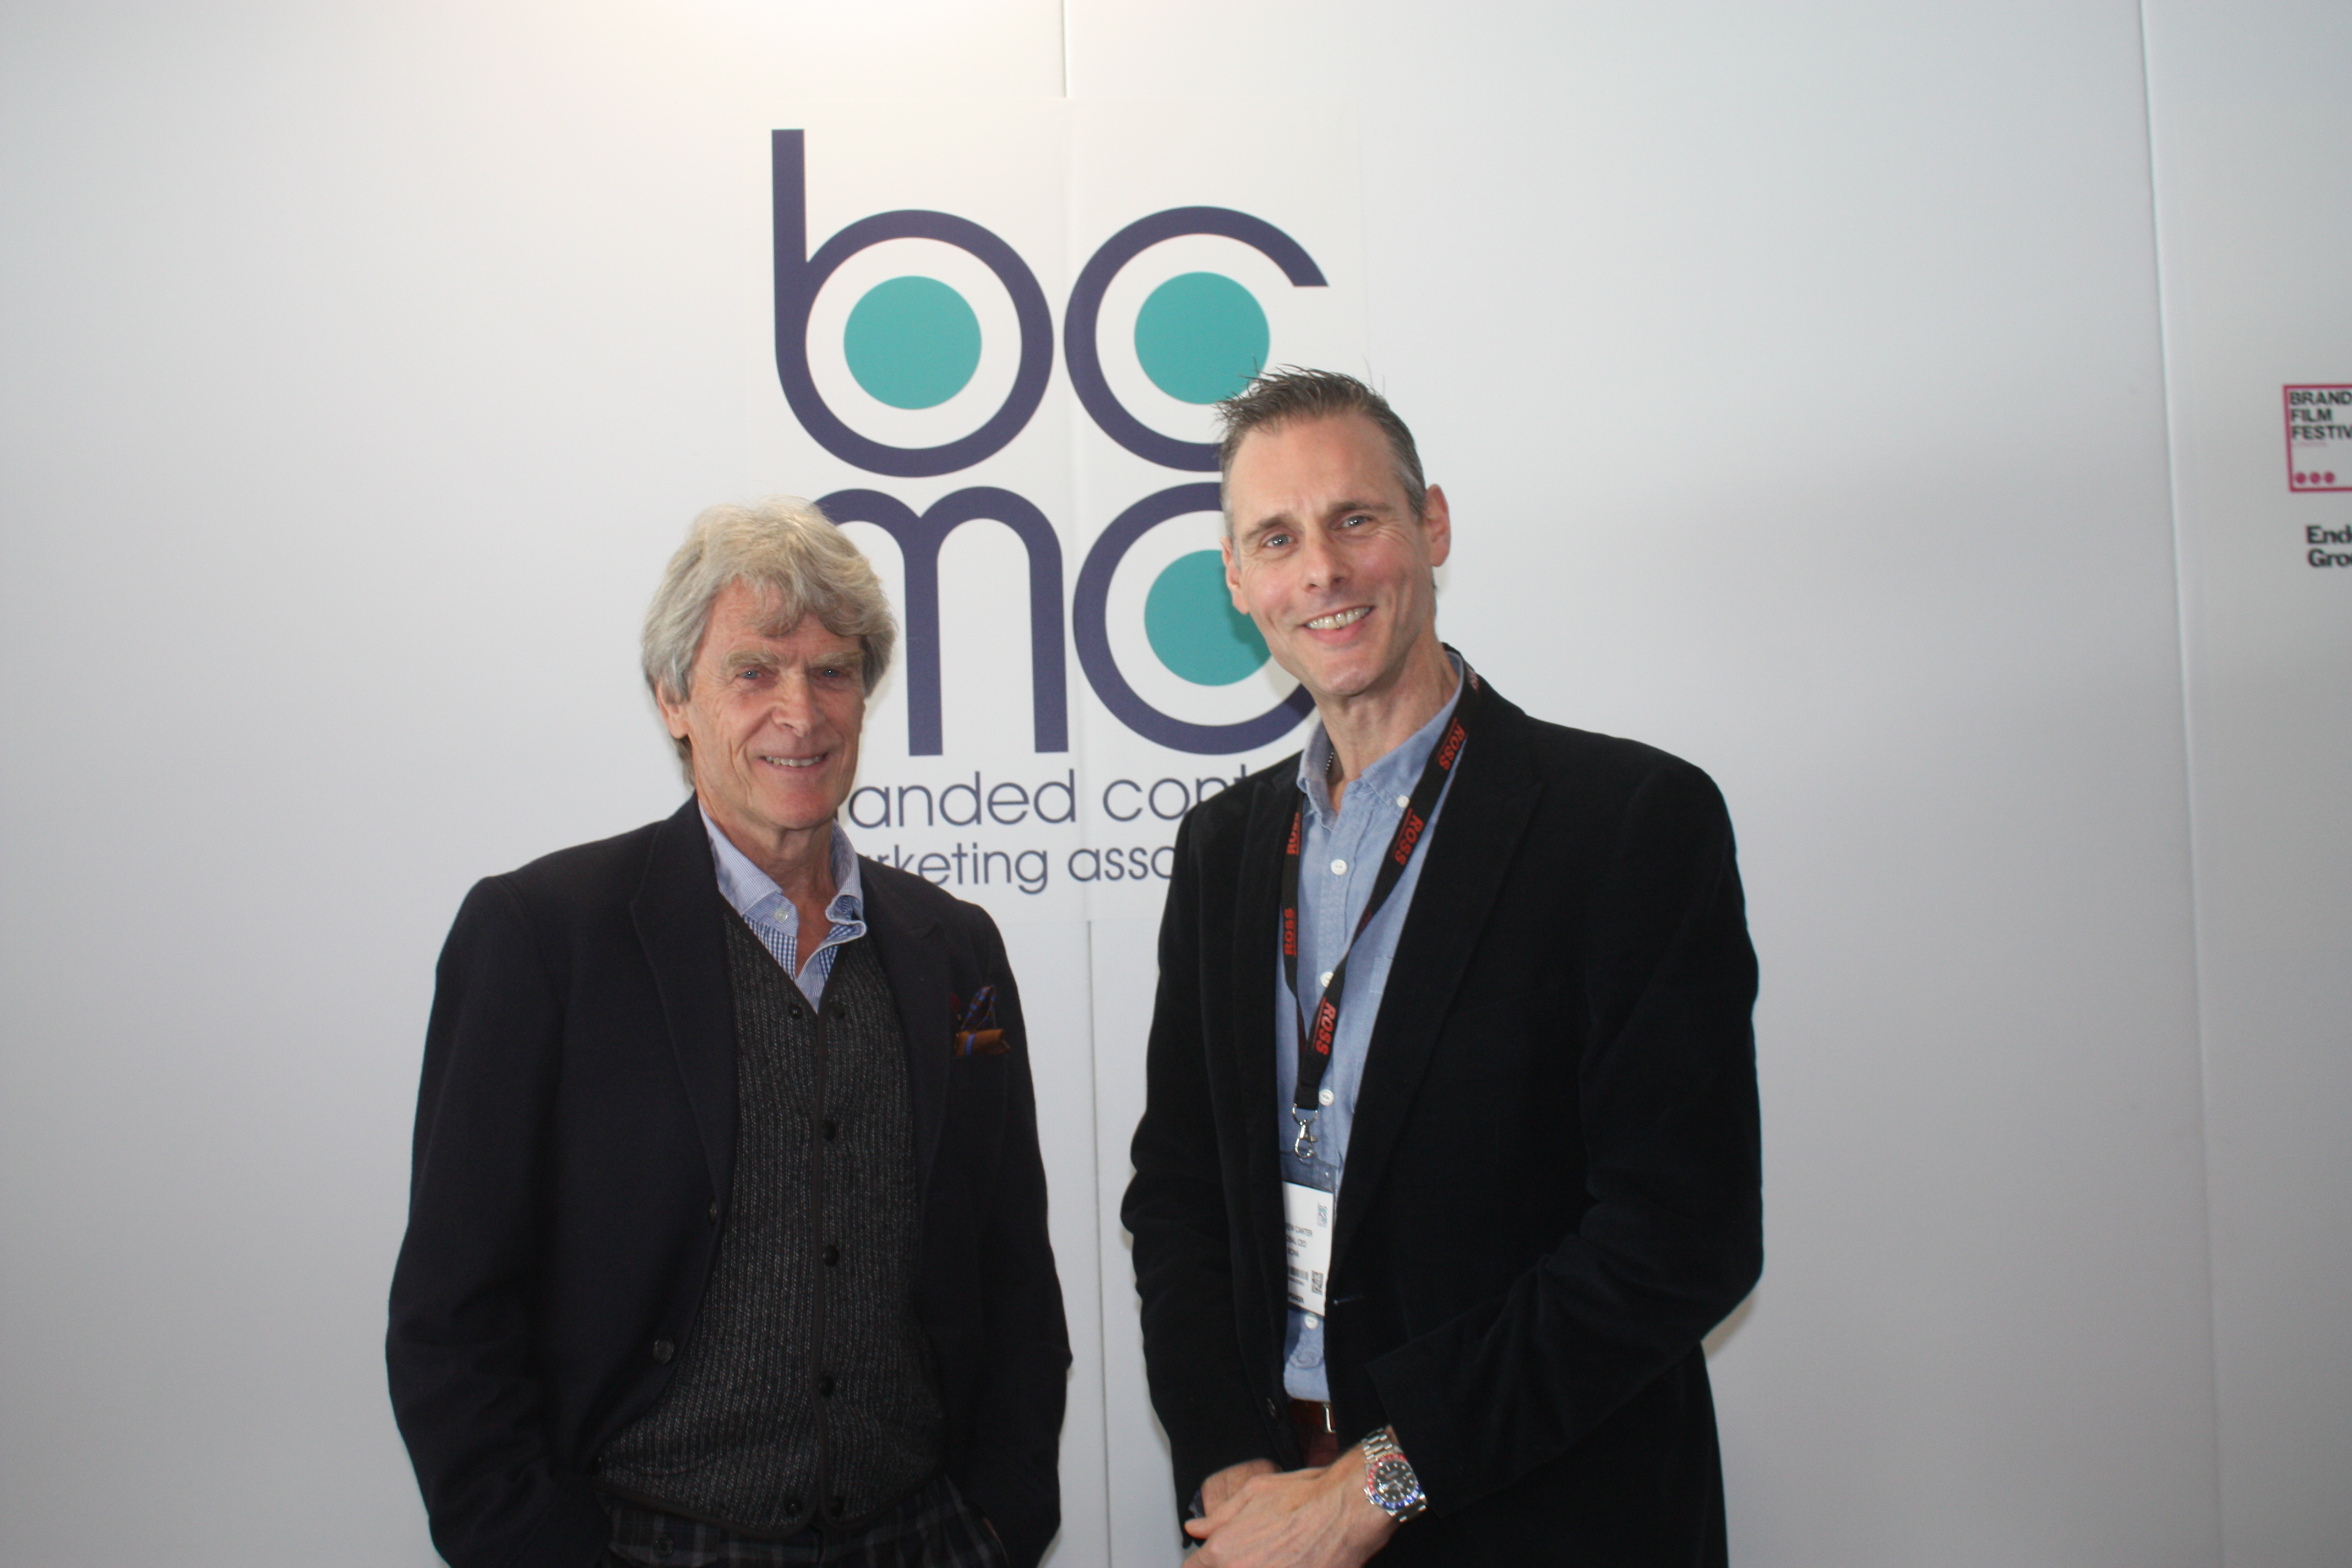 Sir John Hegarty and Andrew Canter, Global CEO, BCMA